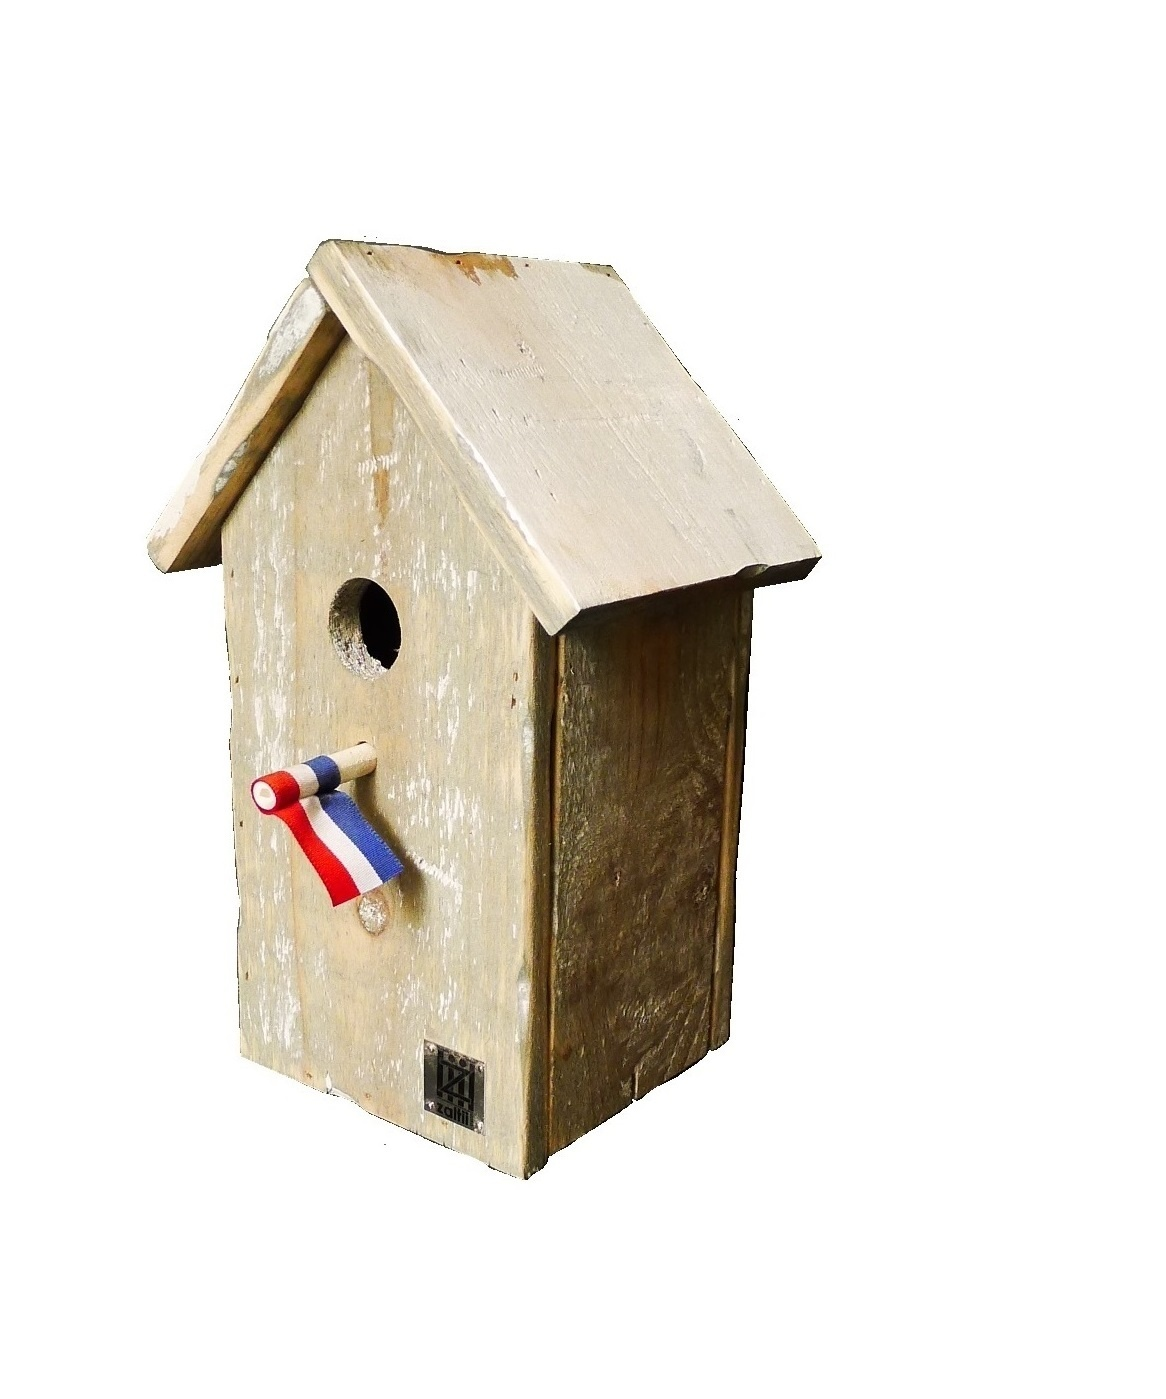 birdhouse old dutch stB pointed roof-7